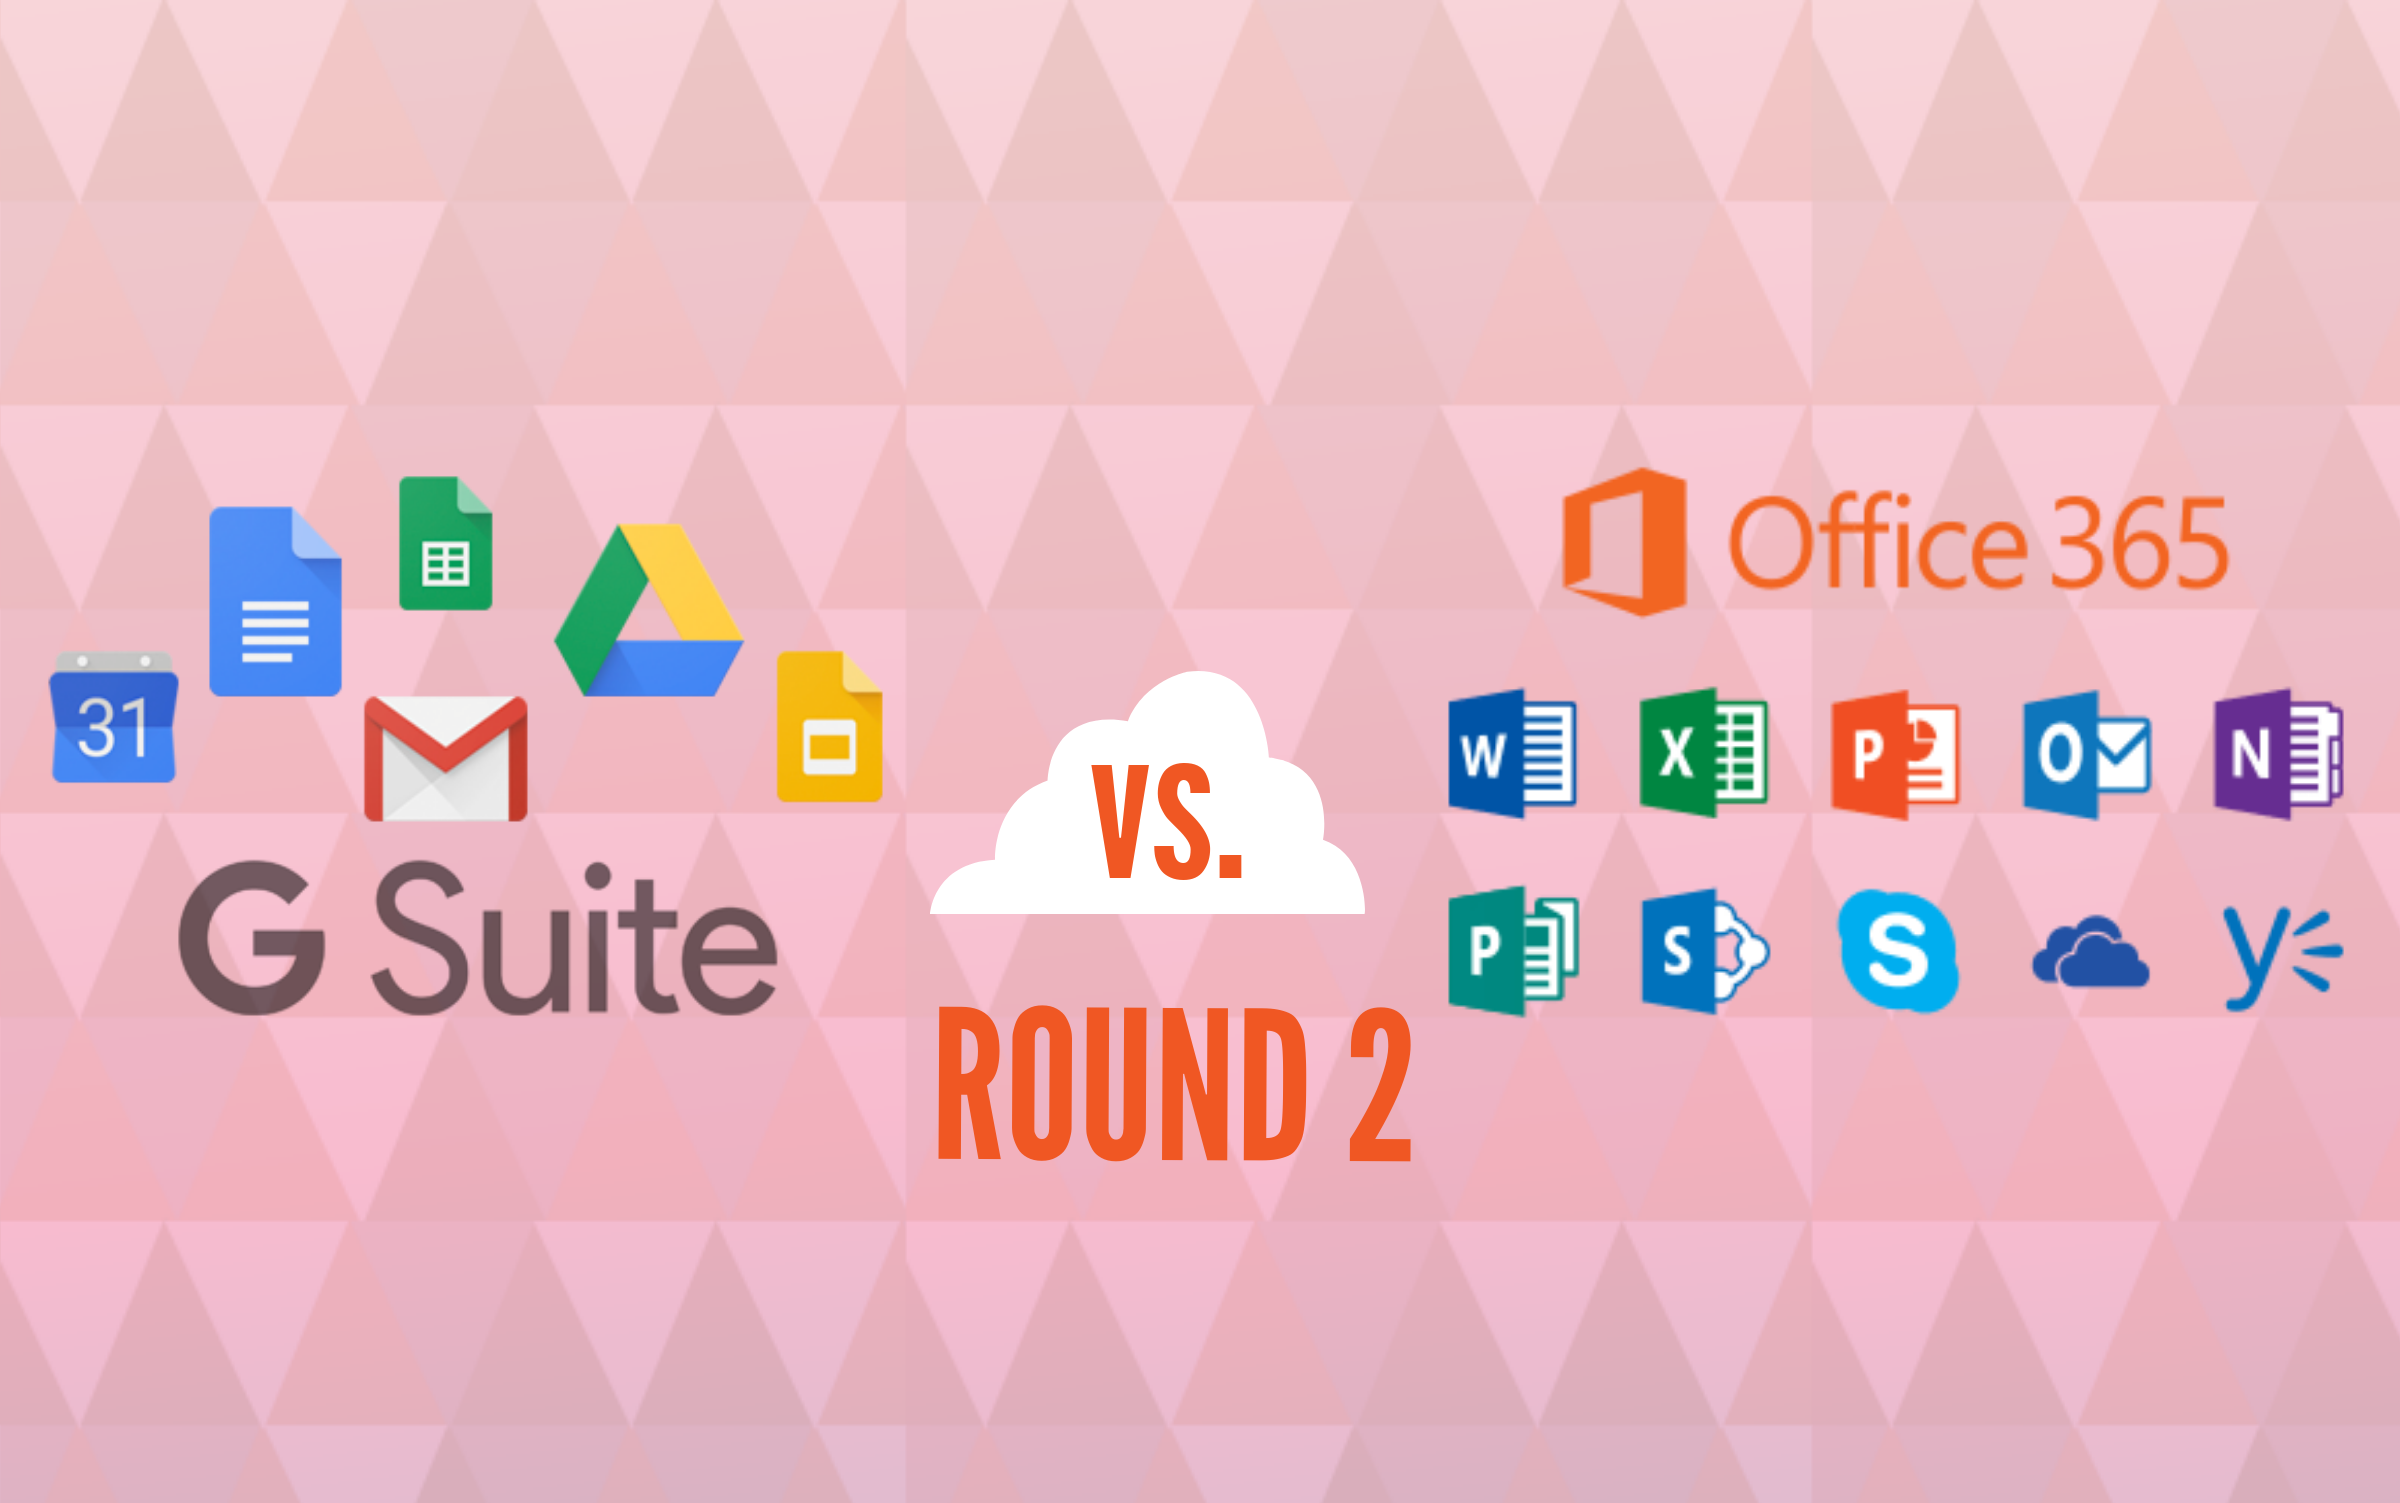 G Suite vs. Office 365: The features in-depth (Infographic)